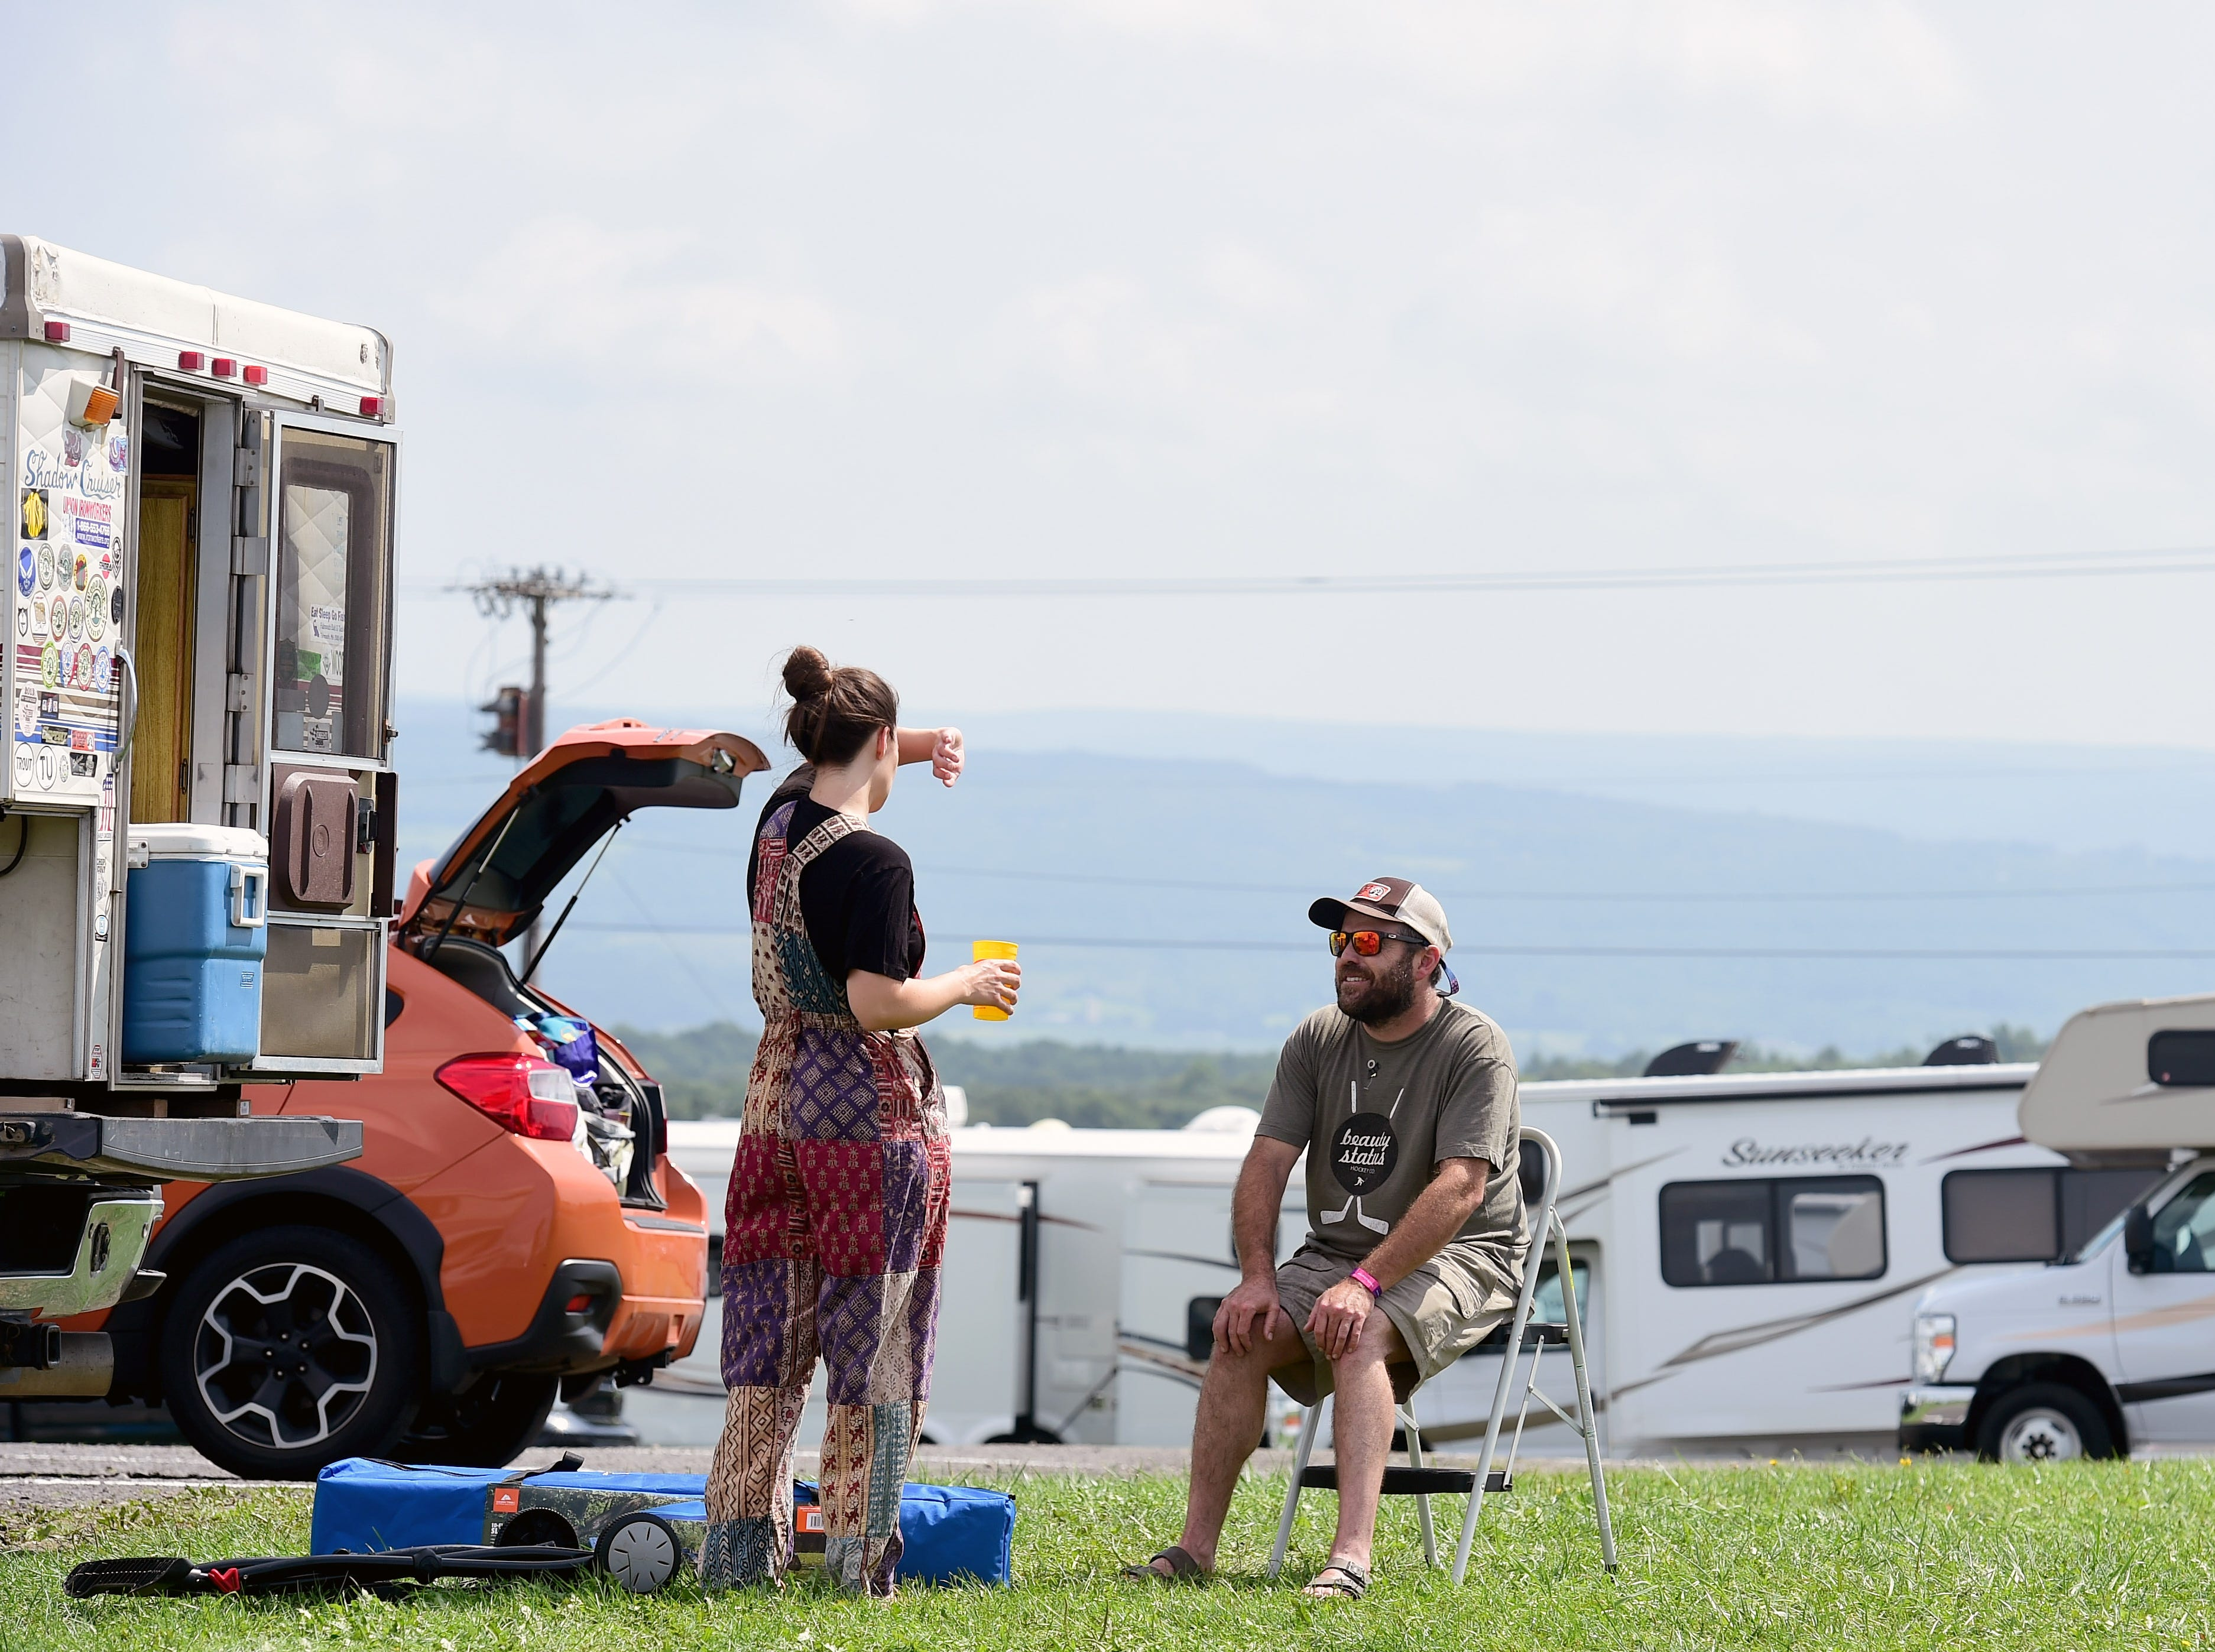 Phish fans Stephanie Balfoort of Rochester and Dan Prokupets of Honeoye Falls prepare to leave Watkins Glen International on Friday, August 17, 2018. The three-day Curveball Festival was cancelled on Thursday night due to water quality issues on the site.